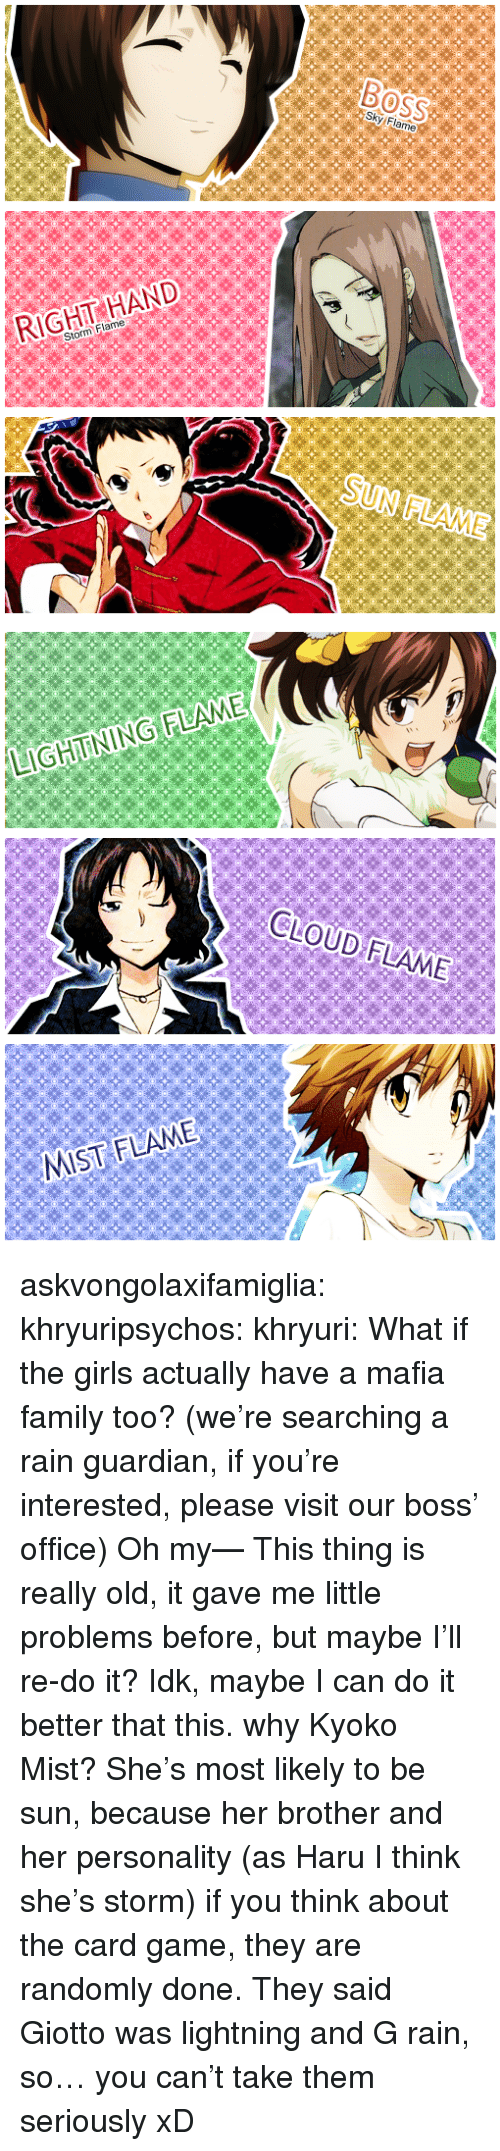 Family, Girls, and Target: RIGHT HAND  Storm Flame   LIGHTINING FLAME  CLOUD FLAME  MIST:FLAME askvongolaxifamiglia:   khryuripsychos:  khryuri:  What if the girls actually have a mafia family too? (we're searching a rain guardian, if you're interested, please visit our boss' office)  Oh my— This thing is really old, it gave me little problems before, but maybe I'll re-do it? Idk, maybe I can do it better that this.   why Kyoko Mist? She's most likely to be sun, because her brother and her personality (as Haru I think she's storm) if you think about the card game, they are randomly done. They said Giotto was lightning and G rain, so… you can't take them seriously xD